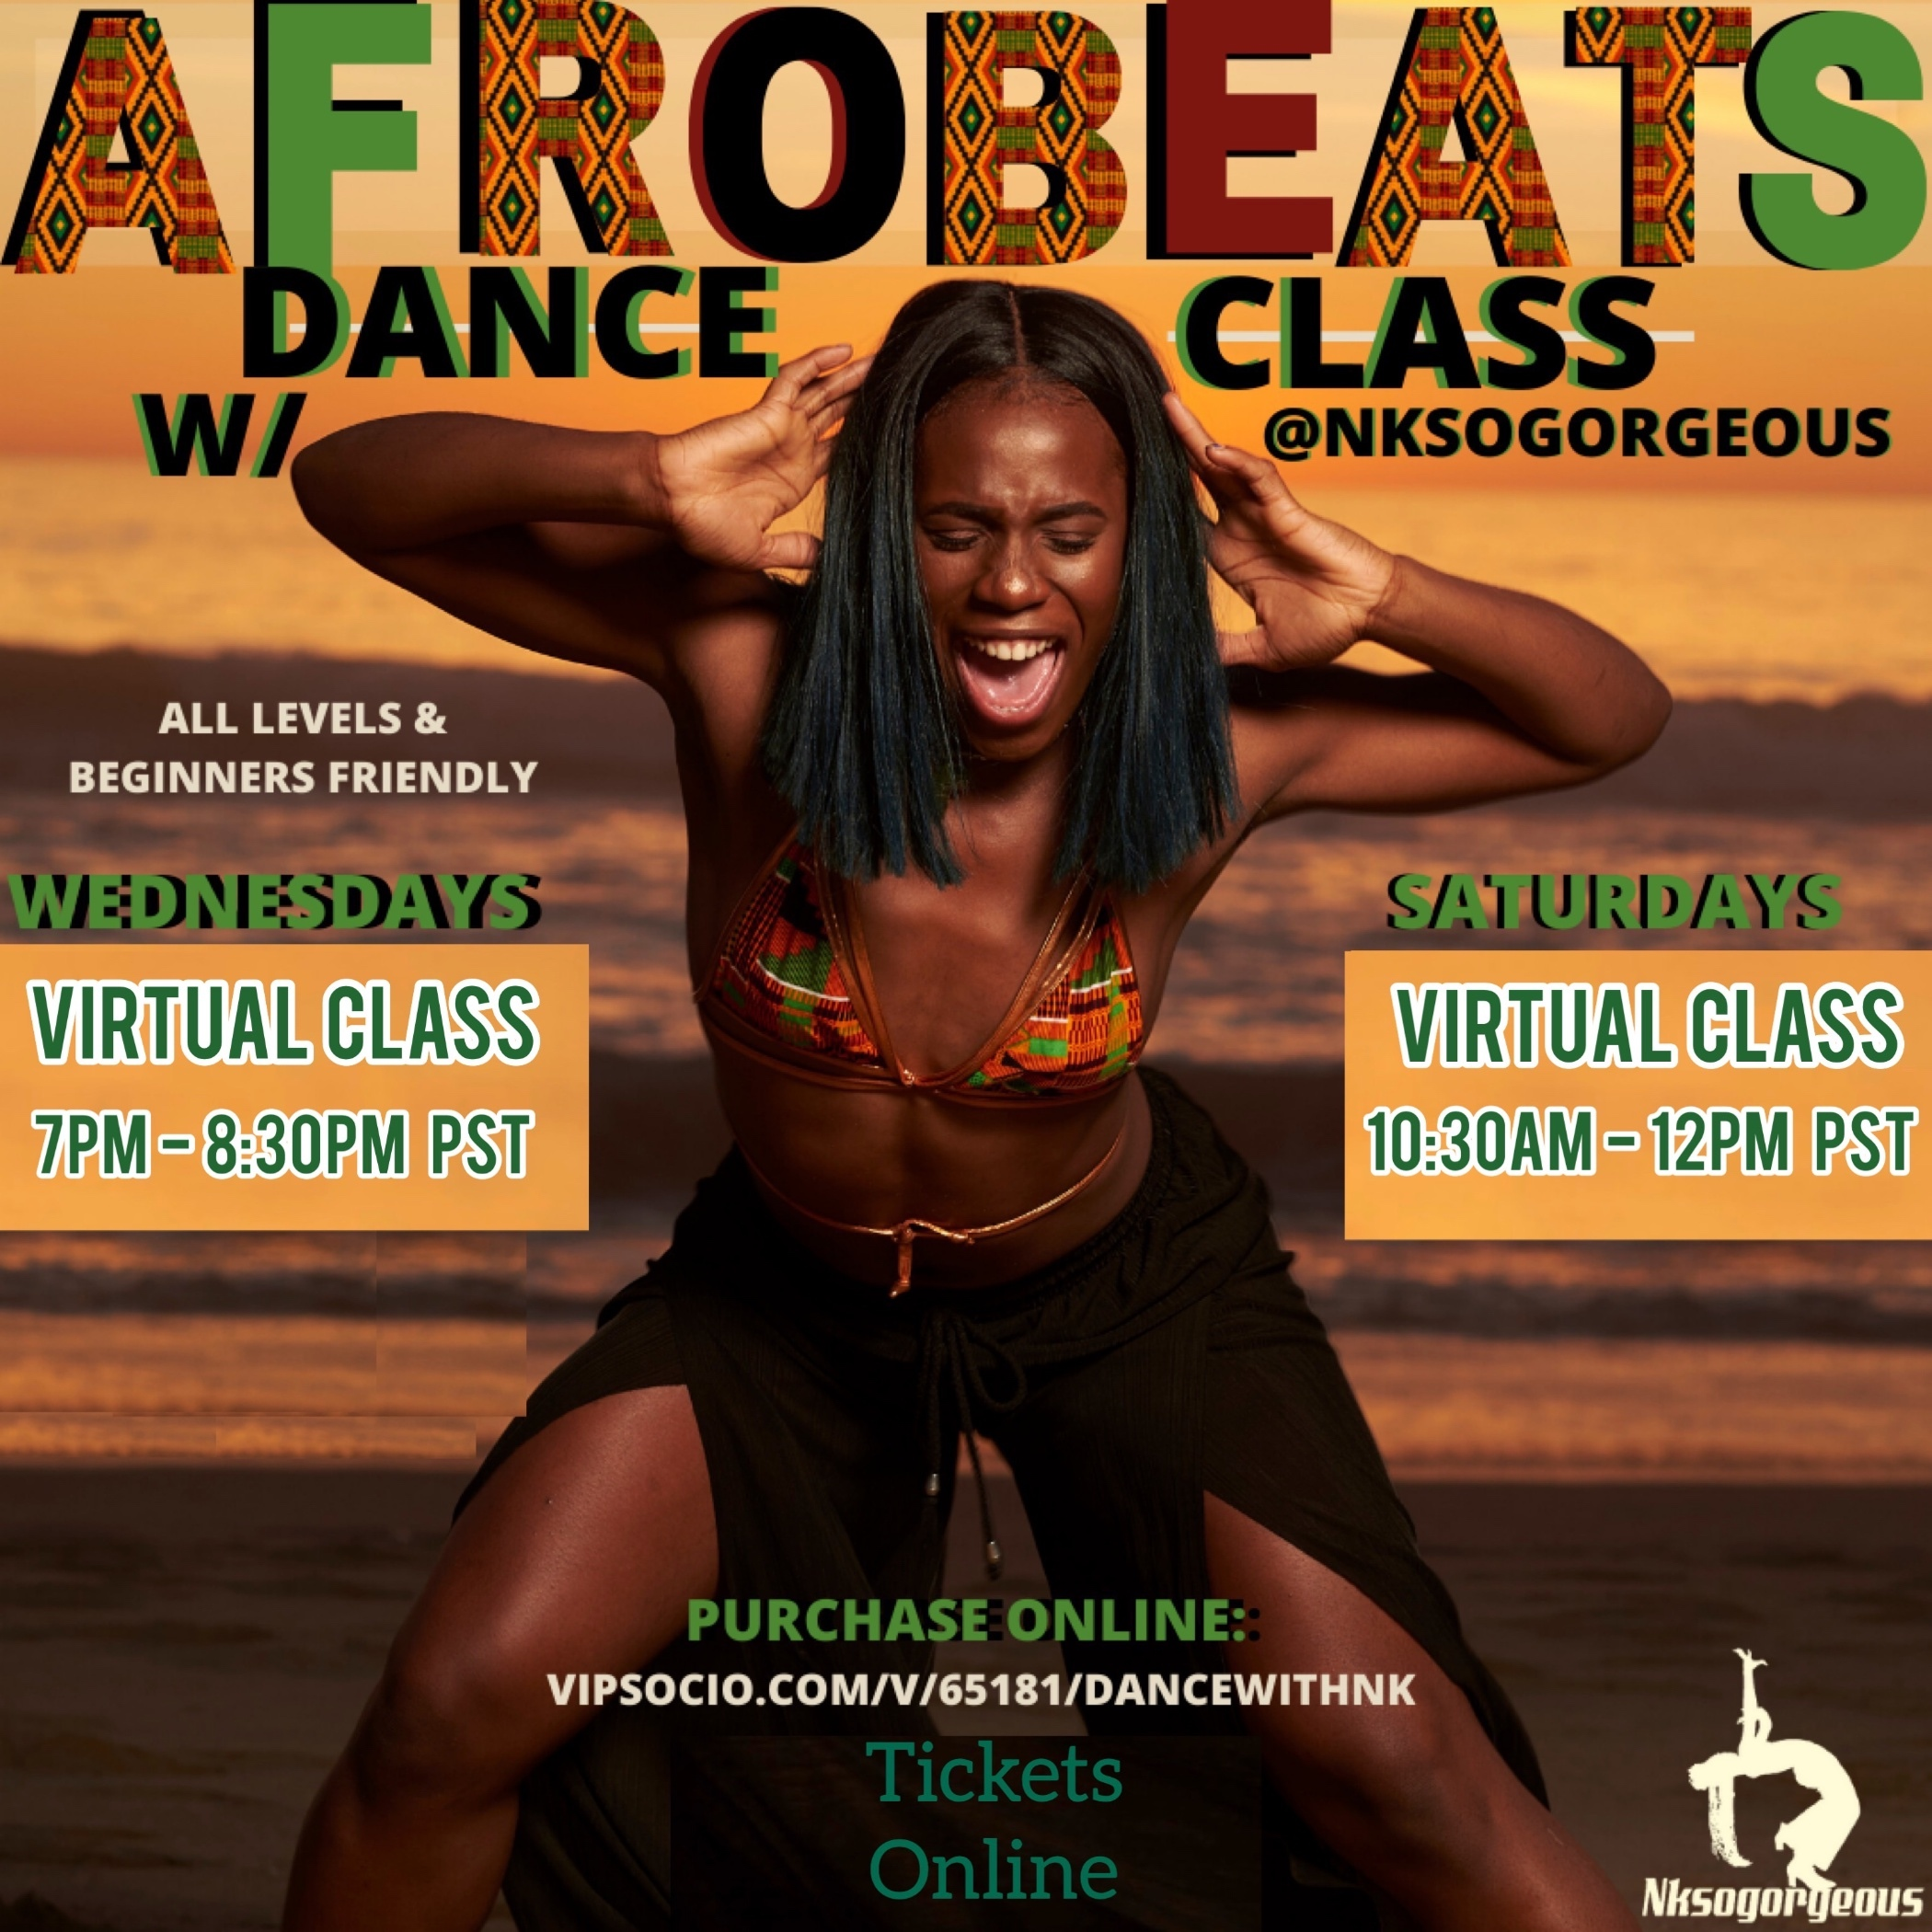 Afrobeat Saturday Dance Class w/ Nk - Virtual